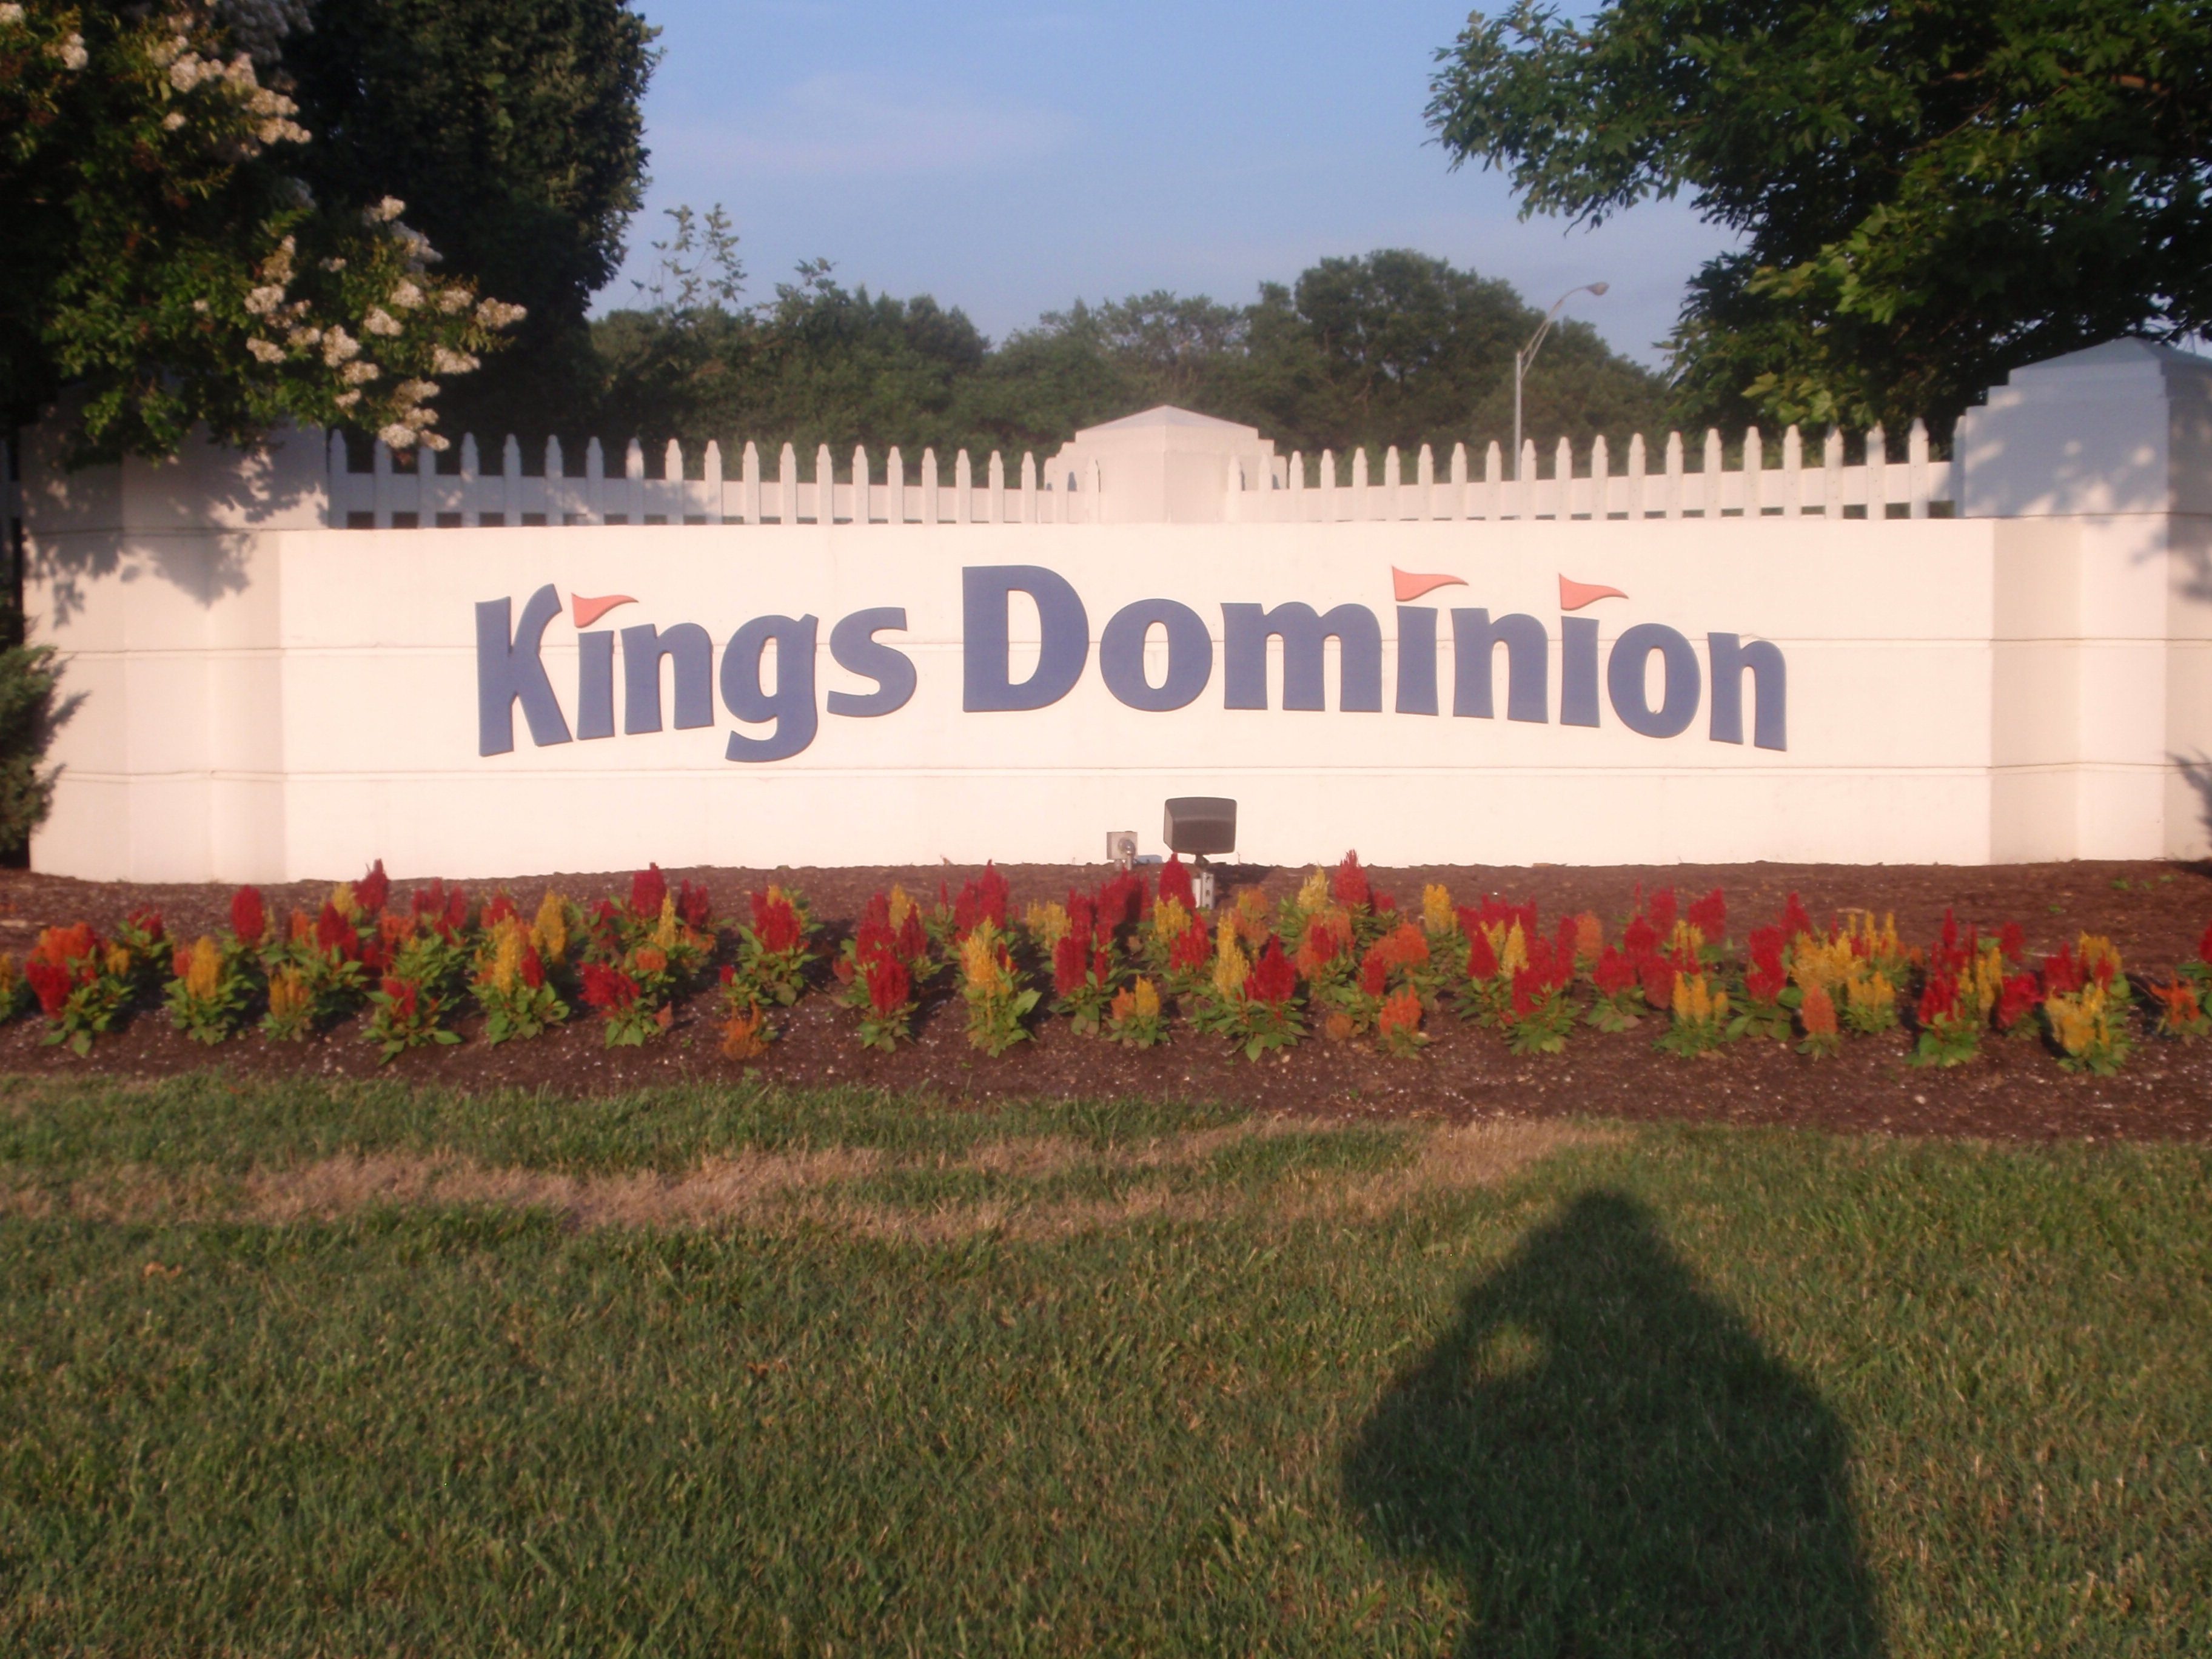 kings dominion sign